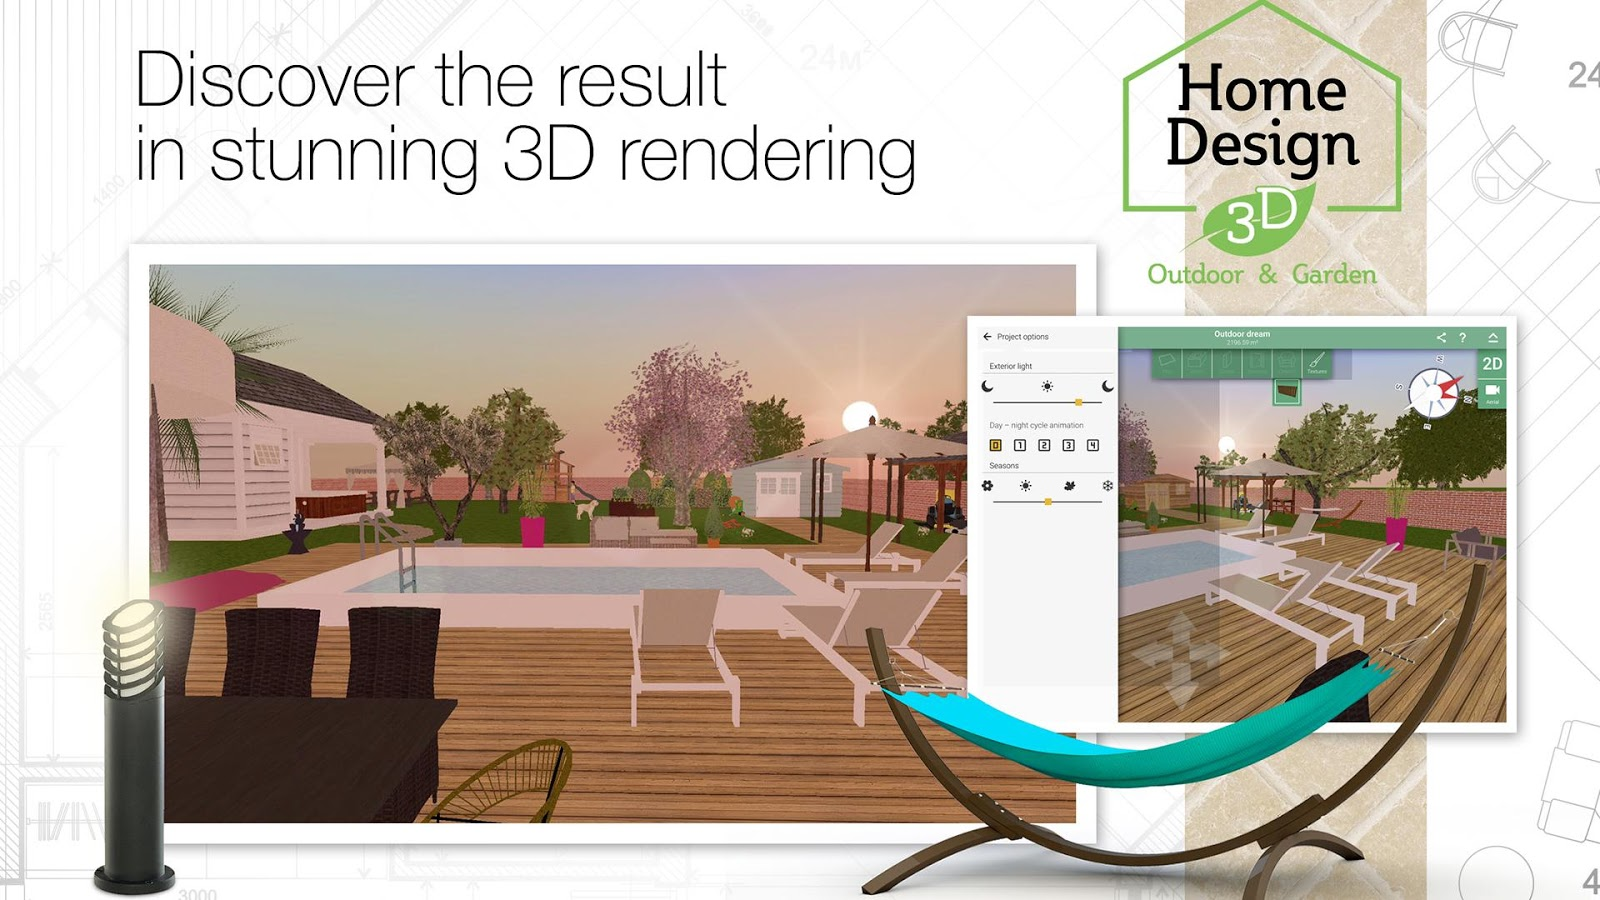 Home design 3d projects